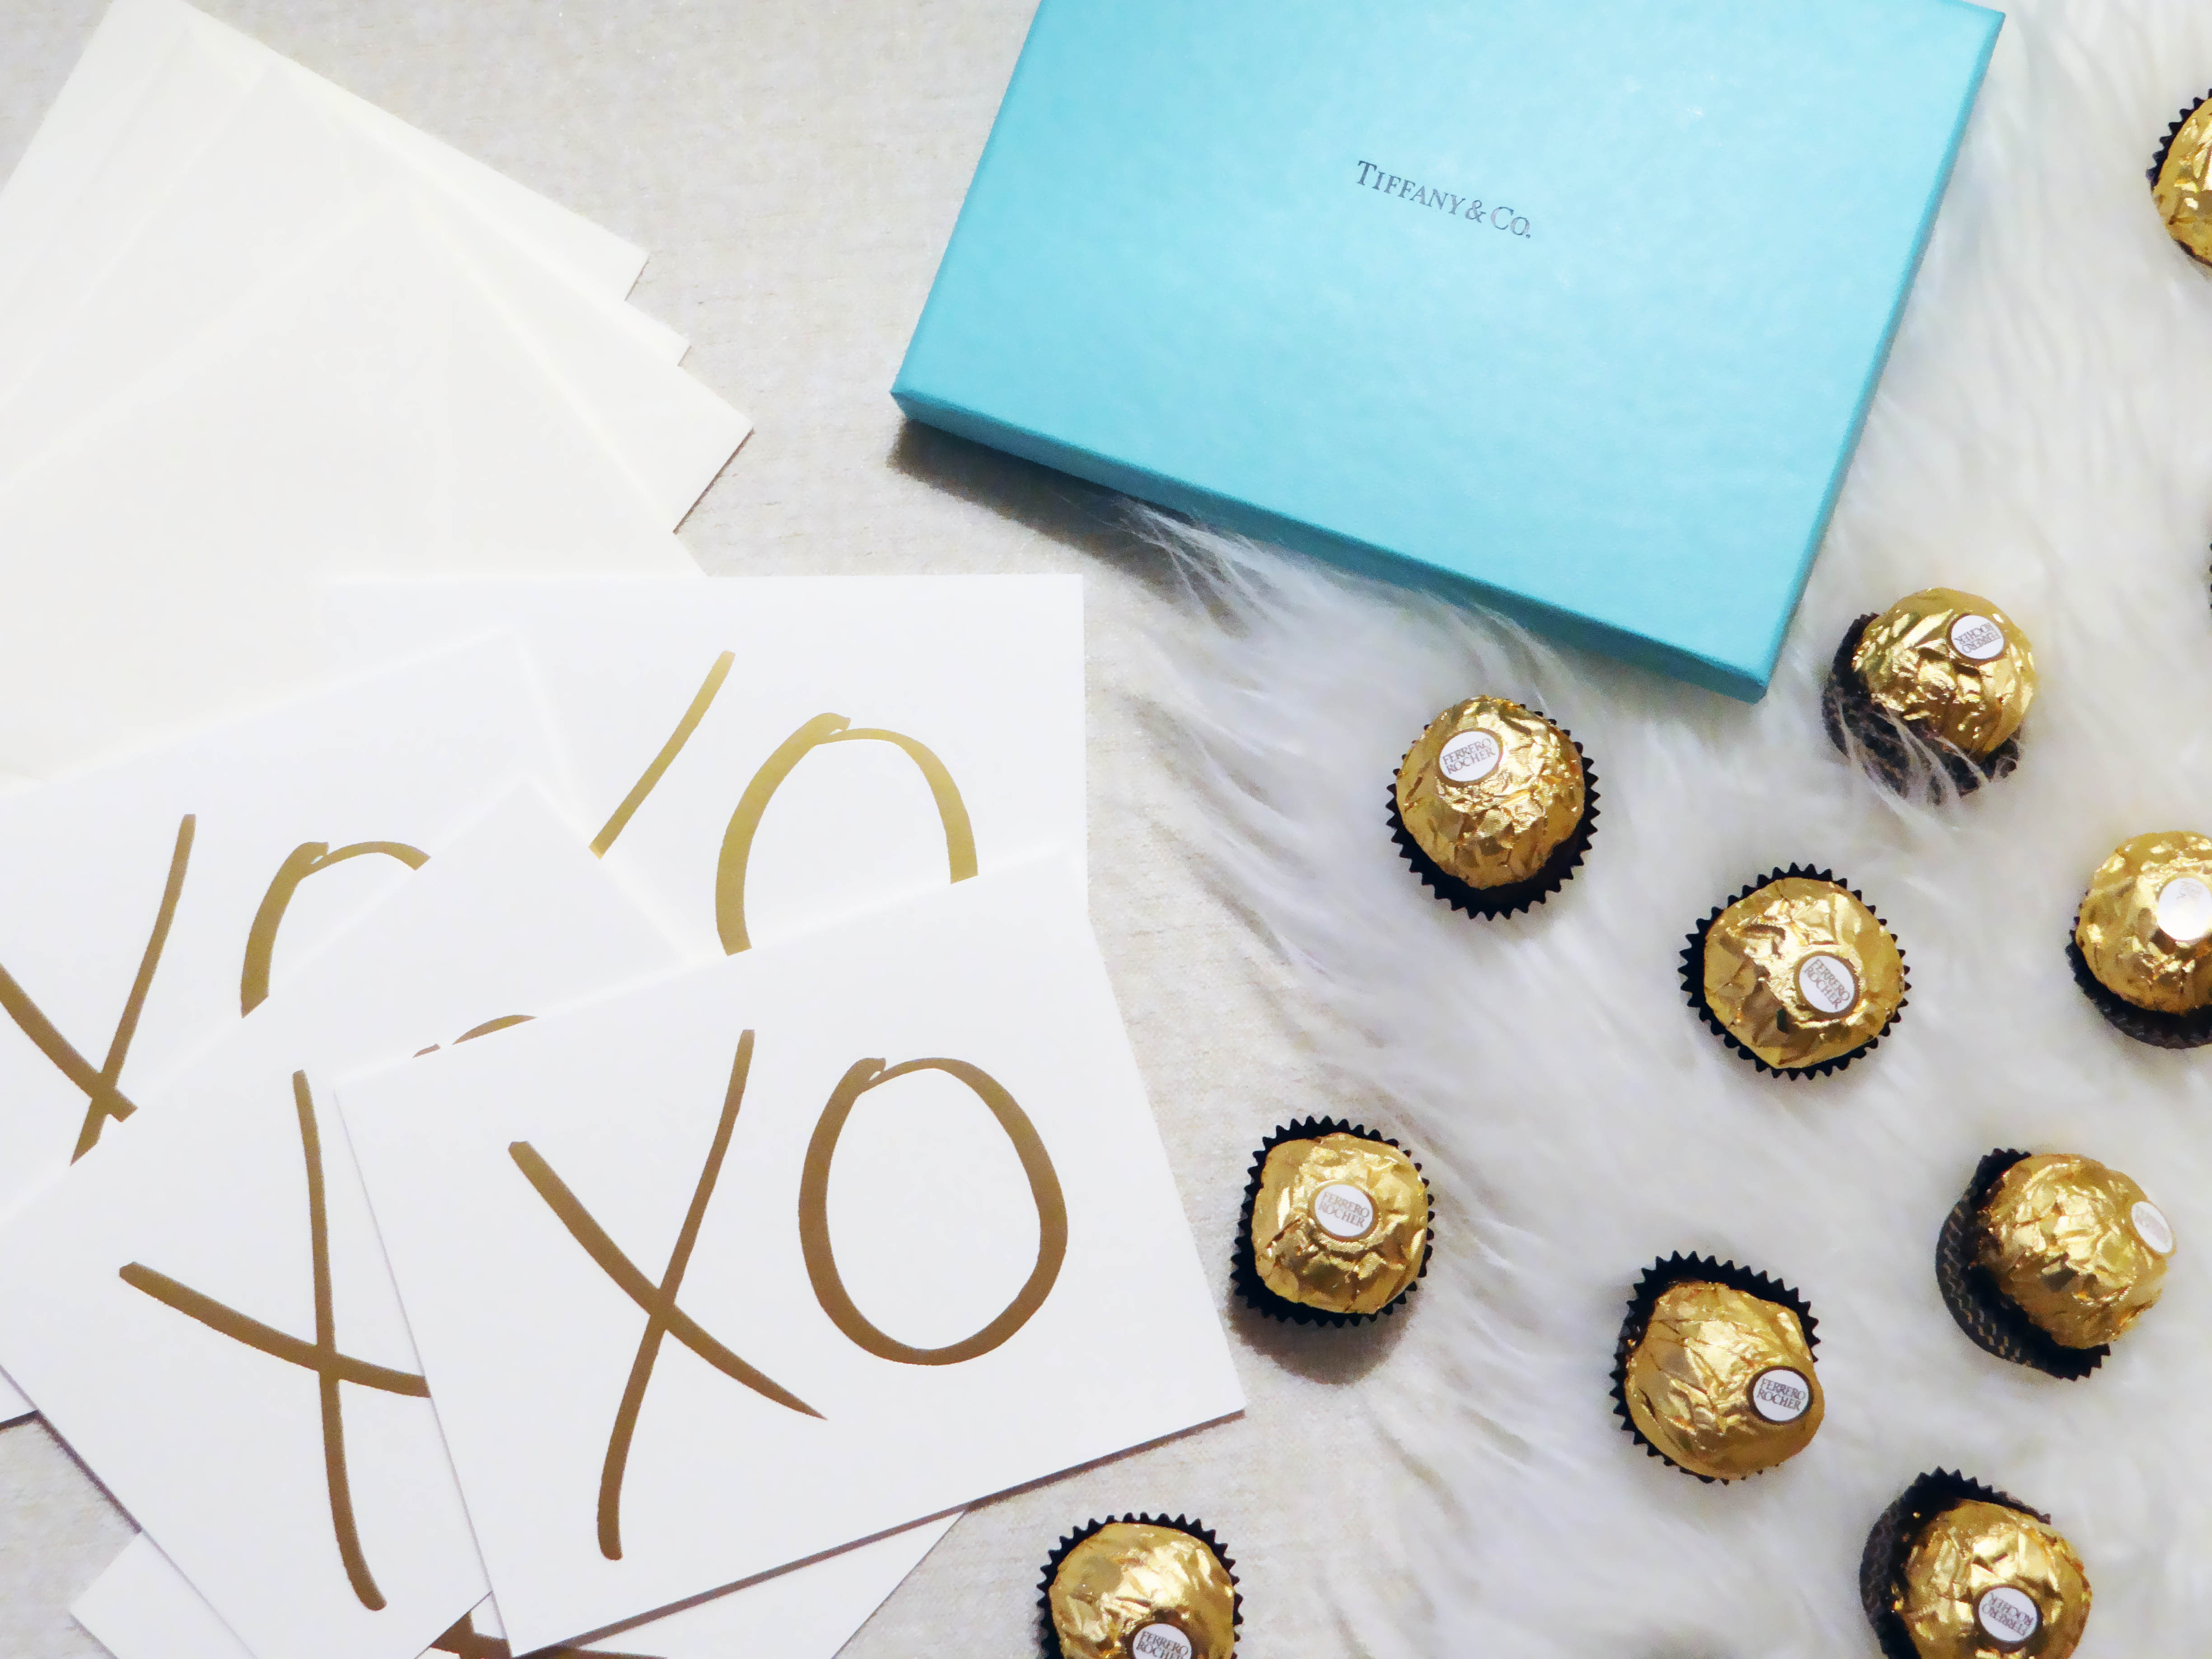 Christmas, Holidays, Ferrero Rocher, Silk Robe, Luxury Loungewear, Melvik Lingerie, Chocolate, Tiffany & Co, Blogger Christmas, Fashion Blogger, Canadian Lifestyle Blog, Garance Dore xo cards, greeting cards